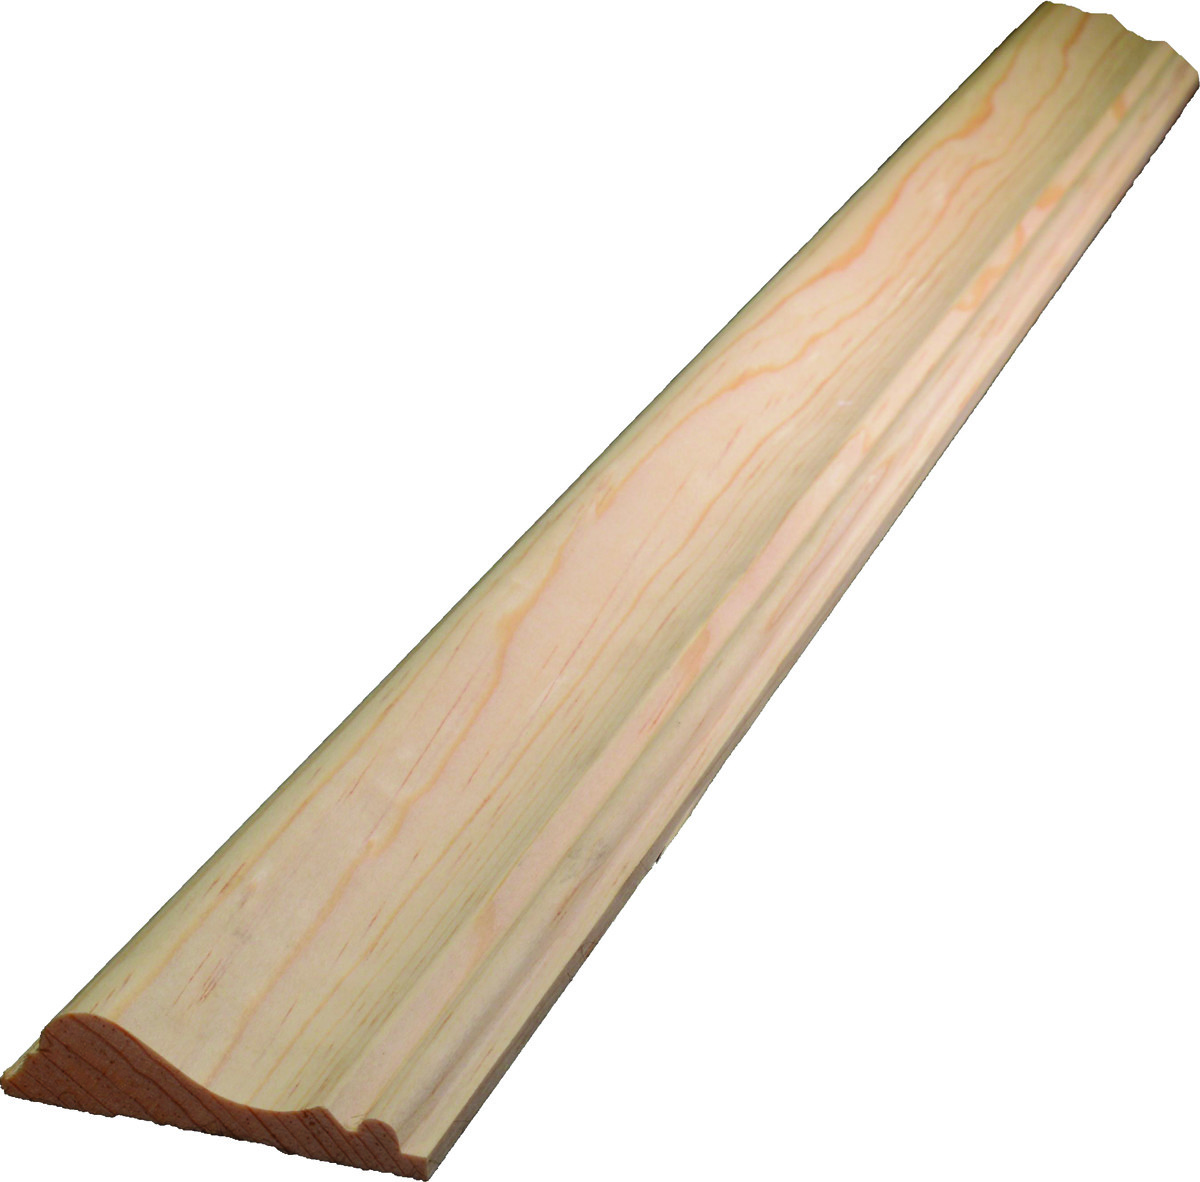 Alexandria Moulding 0W390-20096C1 11/16 By 2 5/8 Inch By 8